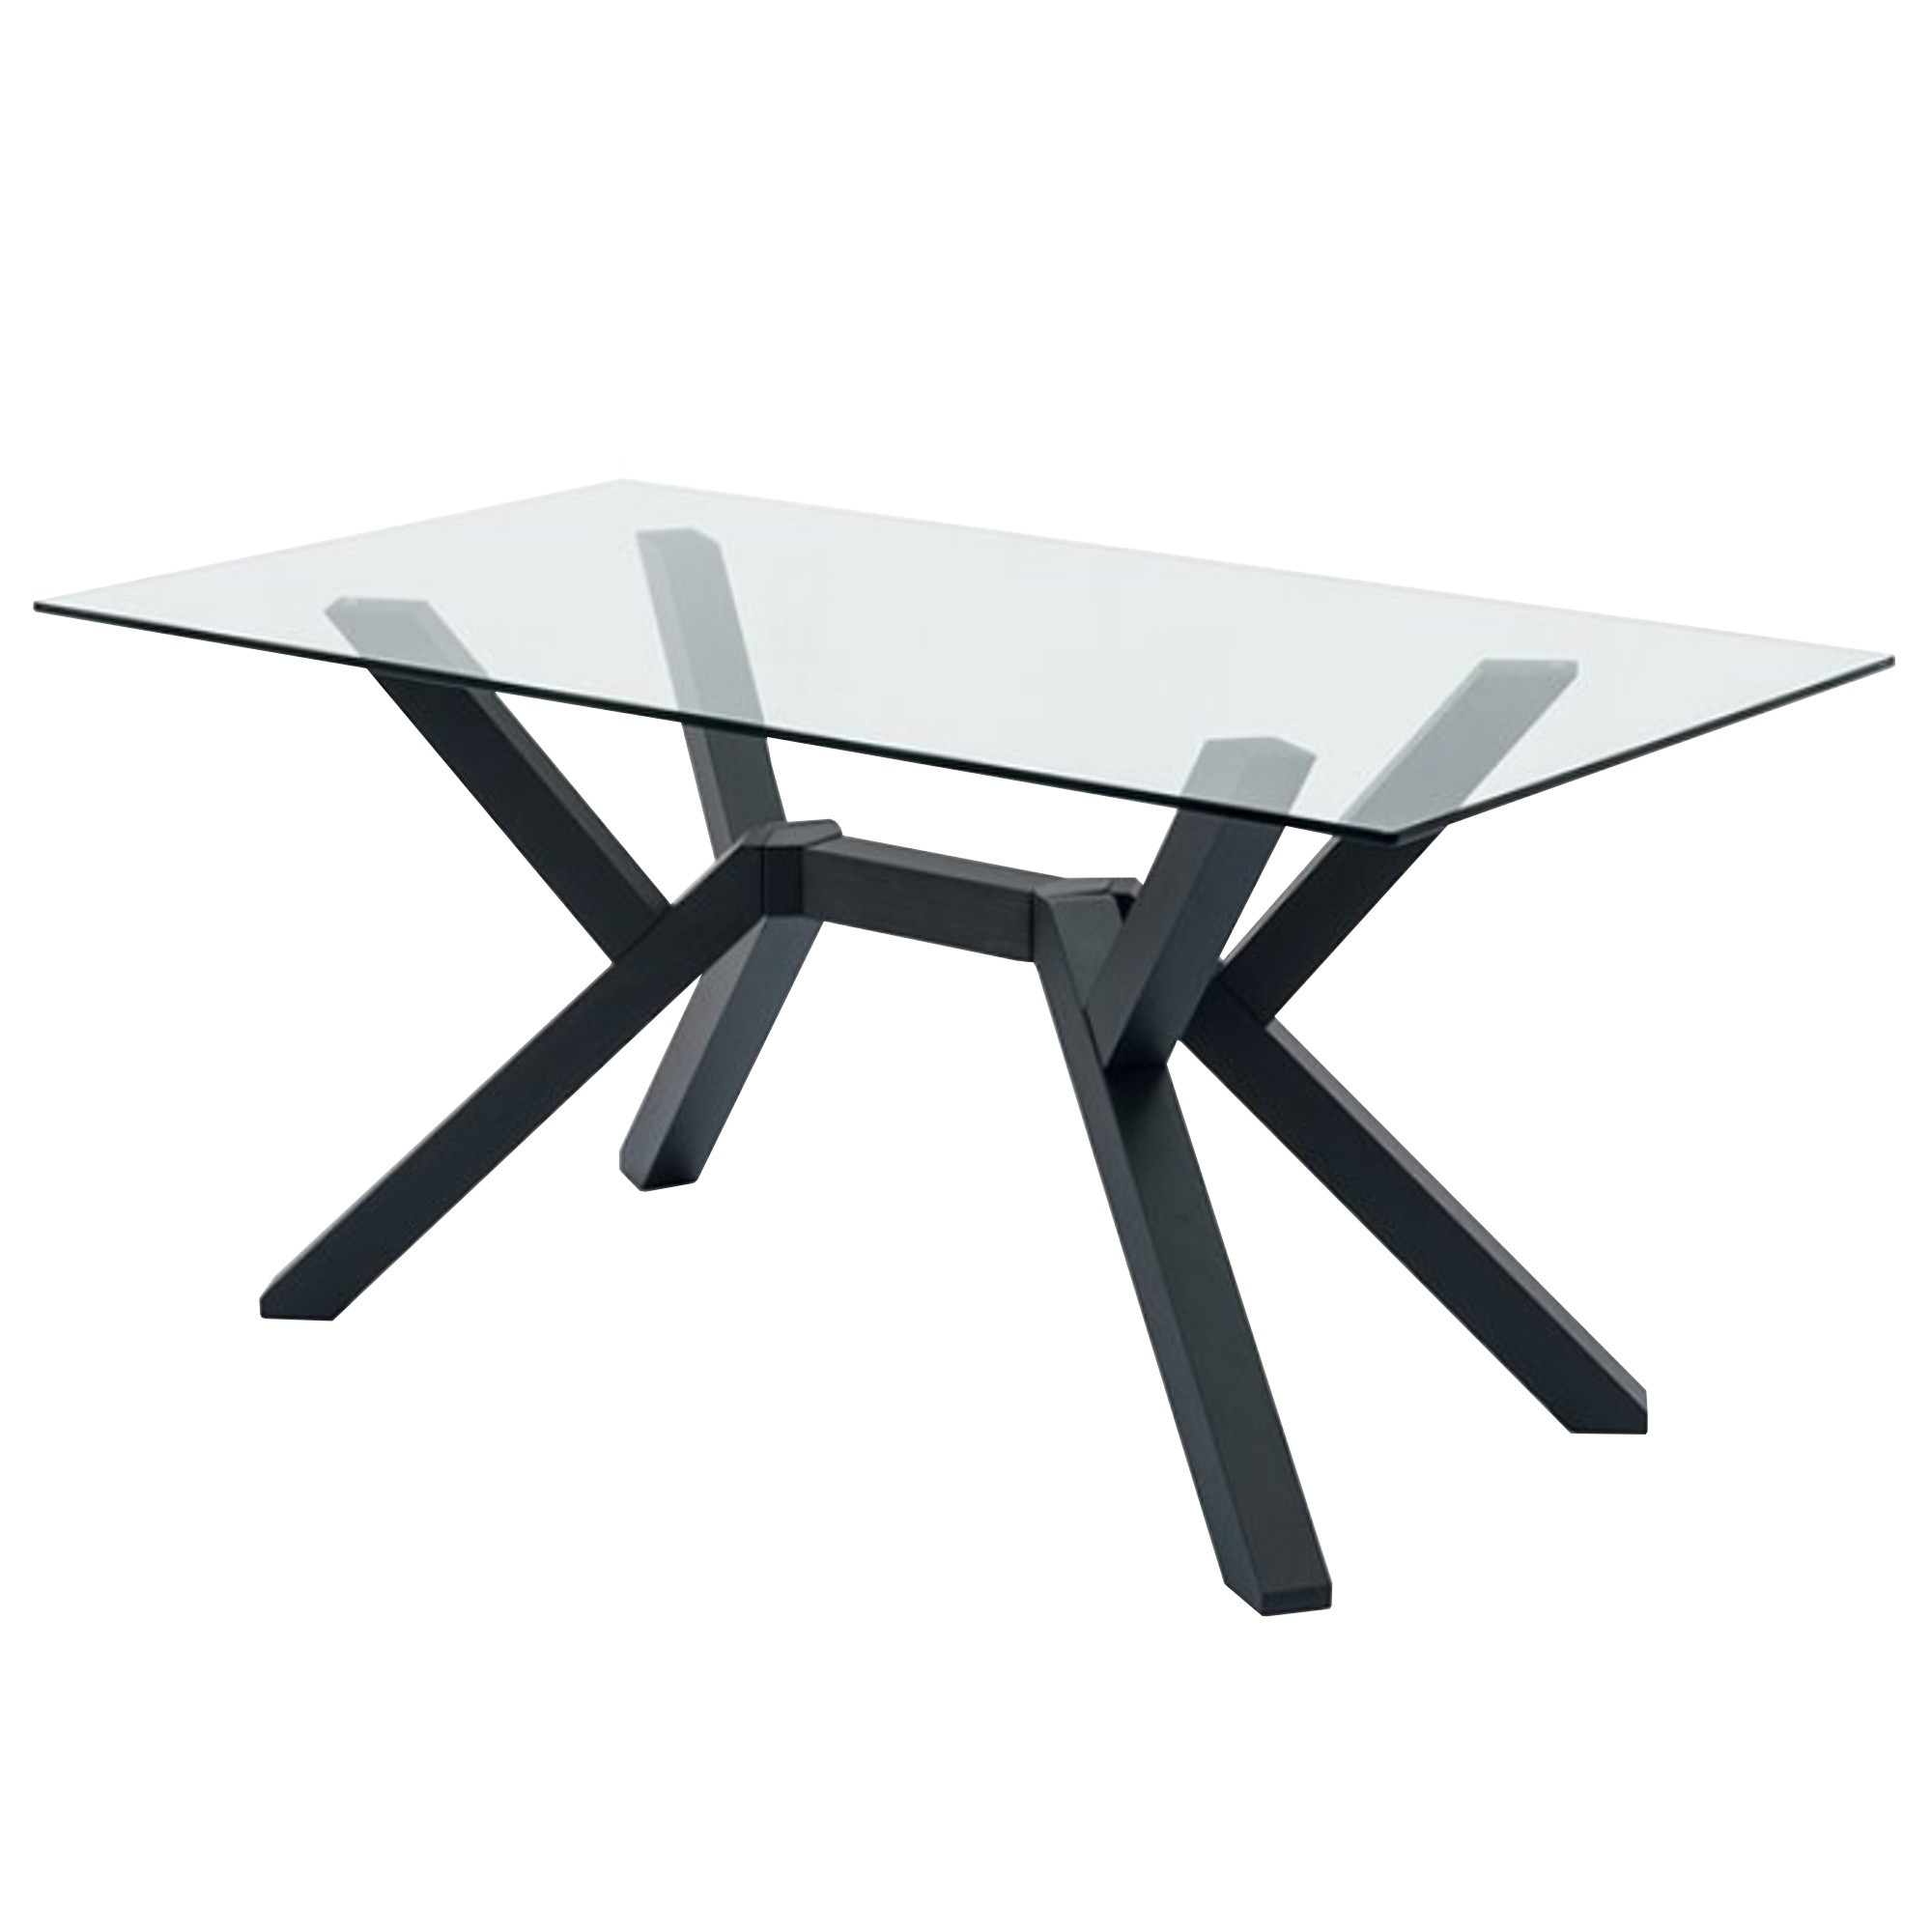 Tavolo Rettangolare In Vetro.Mikado Fixed Table Fixed Tables Tables Connubia By